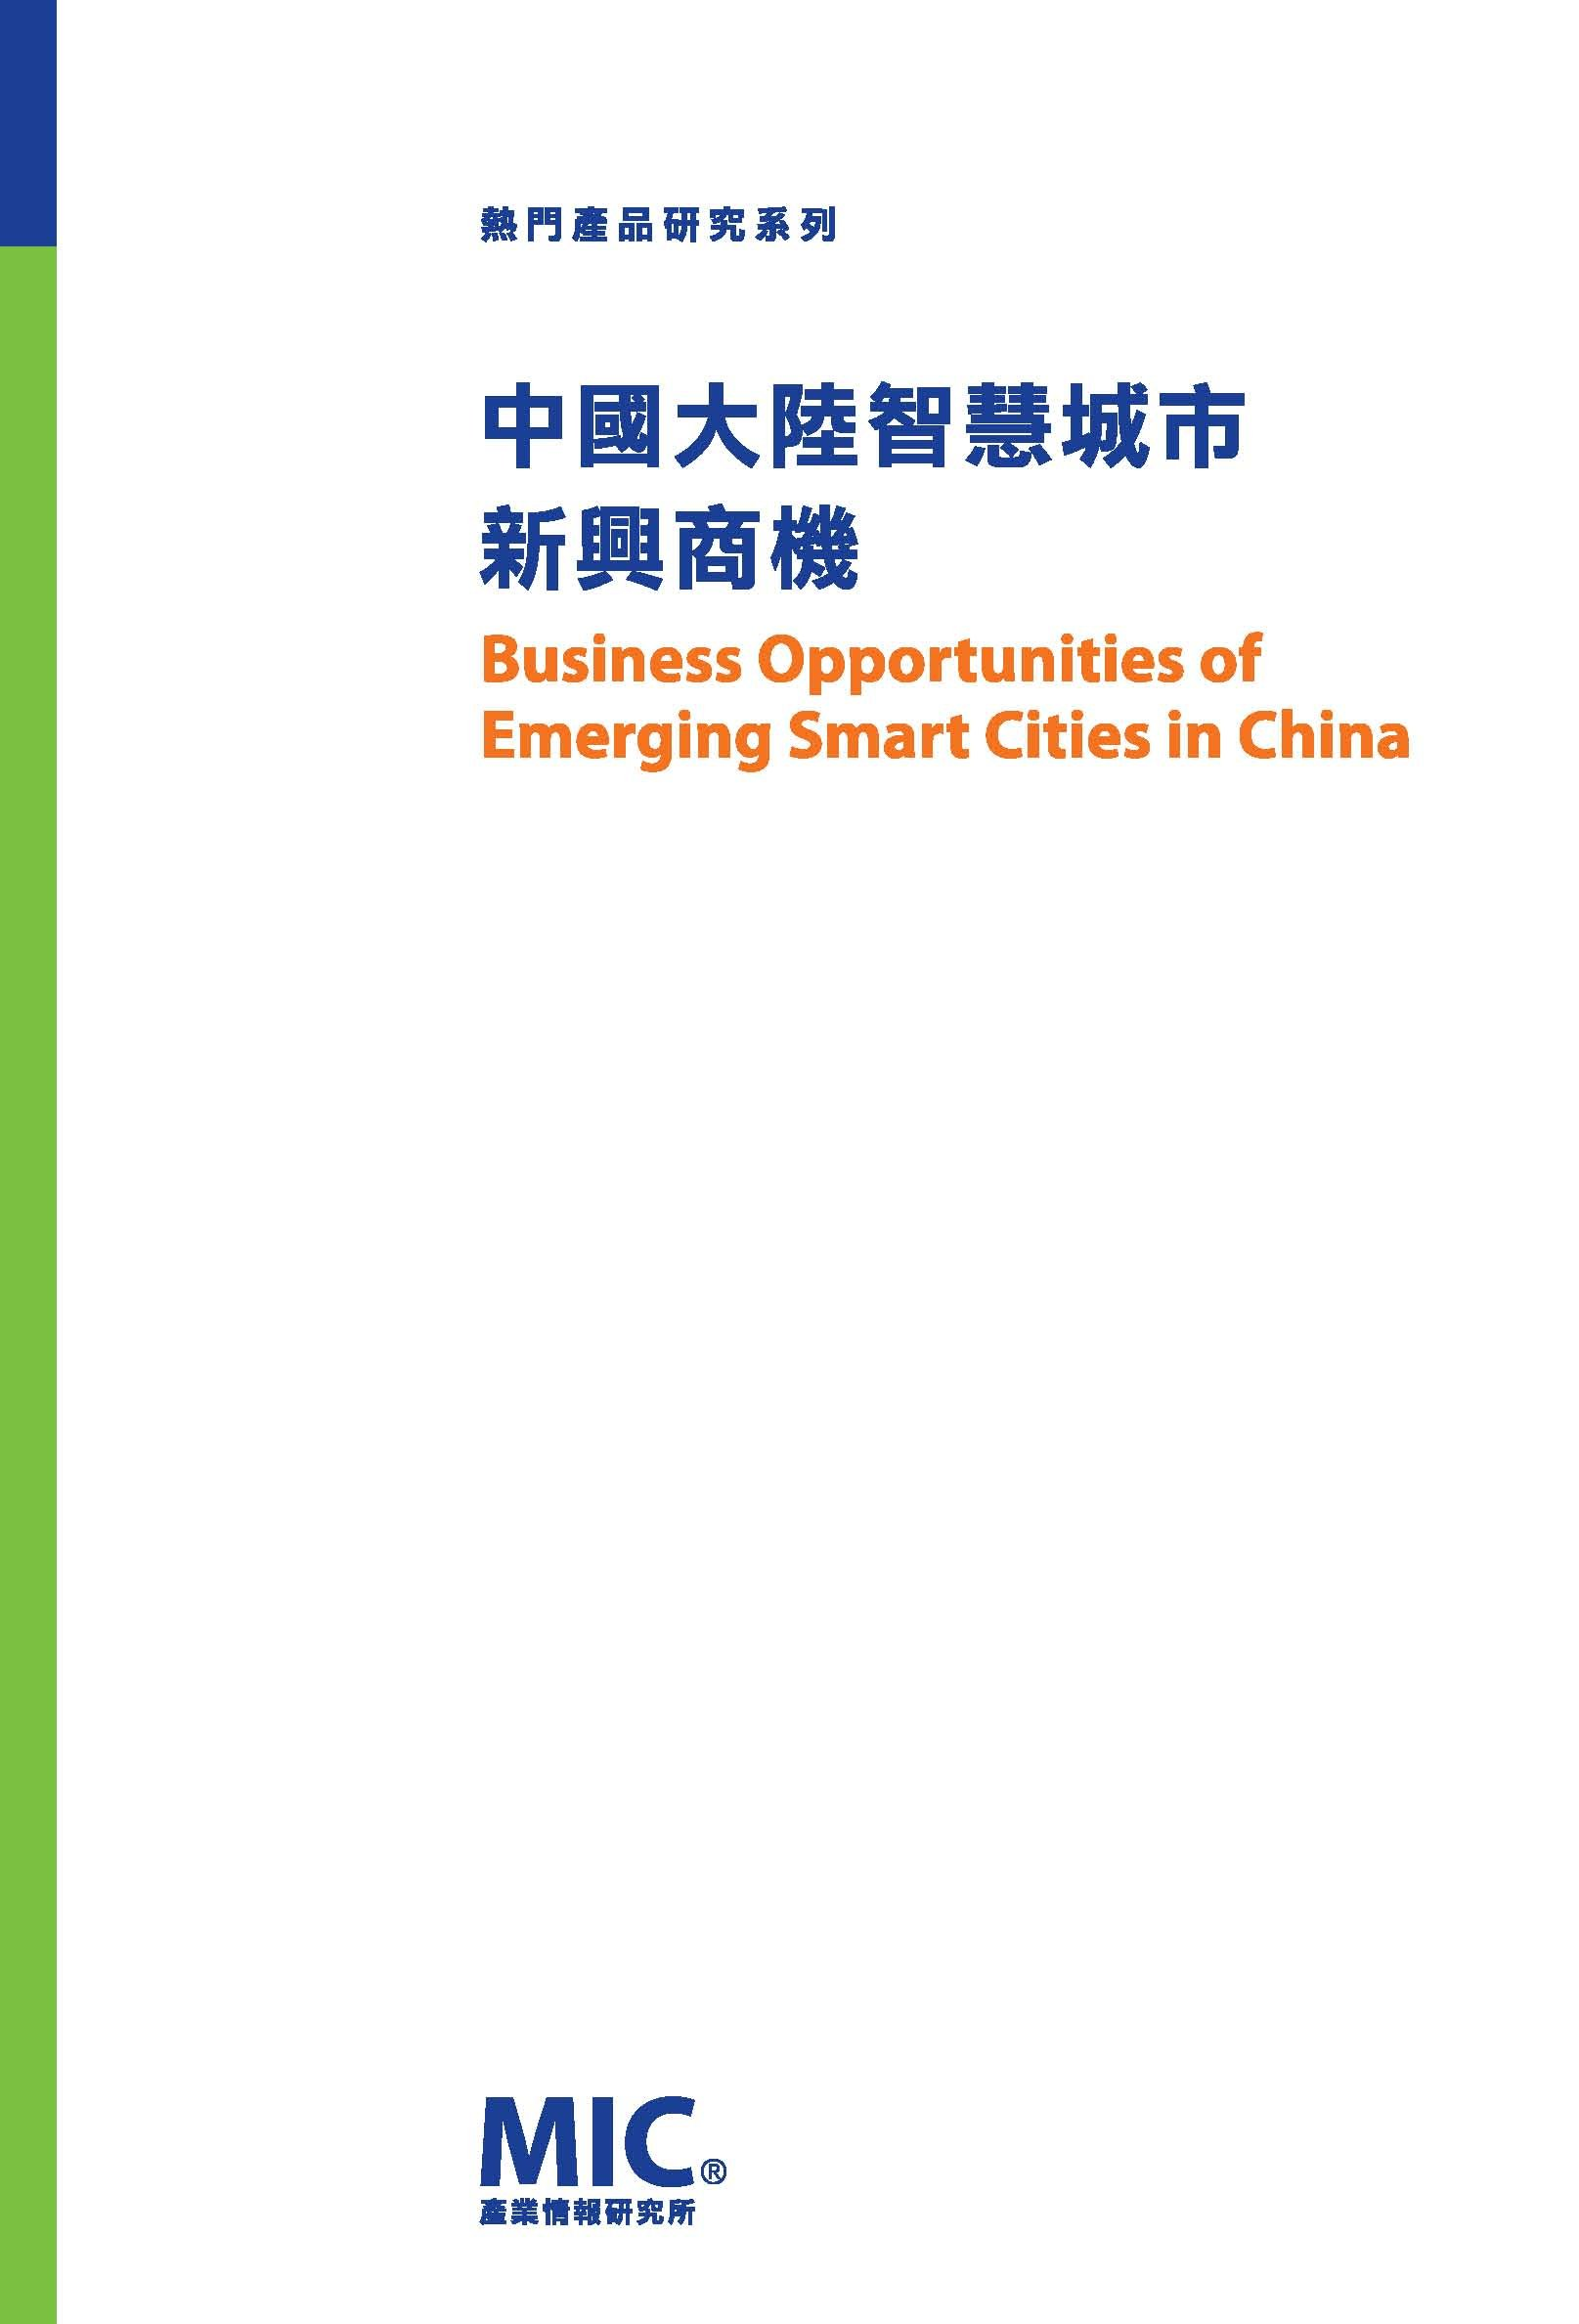 Business Opportunities of Emerging Smart Cities in China